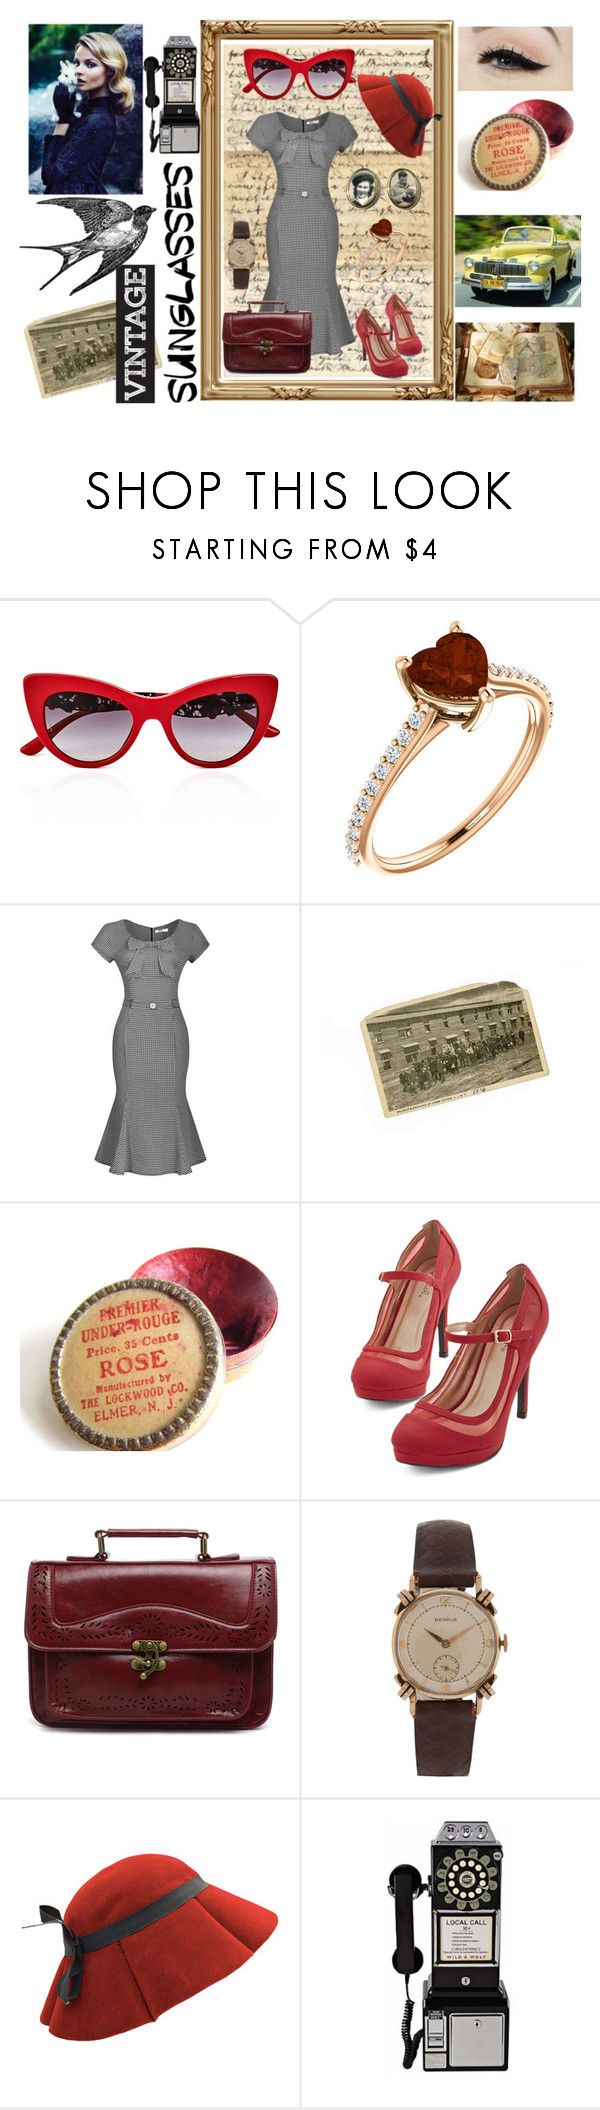 """Vintage Sunglasses"" by emily-dickson-1 ❤ liked on Polyvore featuring Dolce&Gabbana, Anatomy Of, Chicwish, Lilly Daché, Wild & Wolf, vintage and 1950"